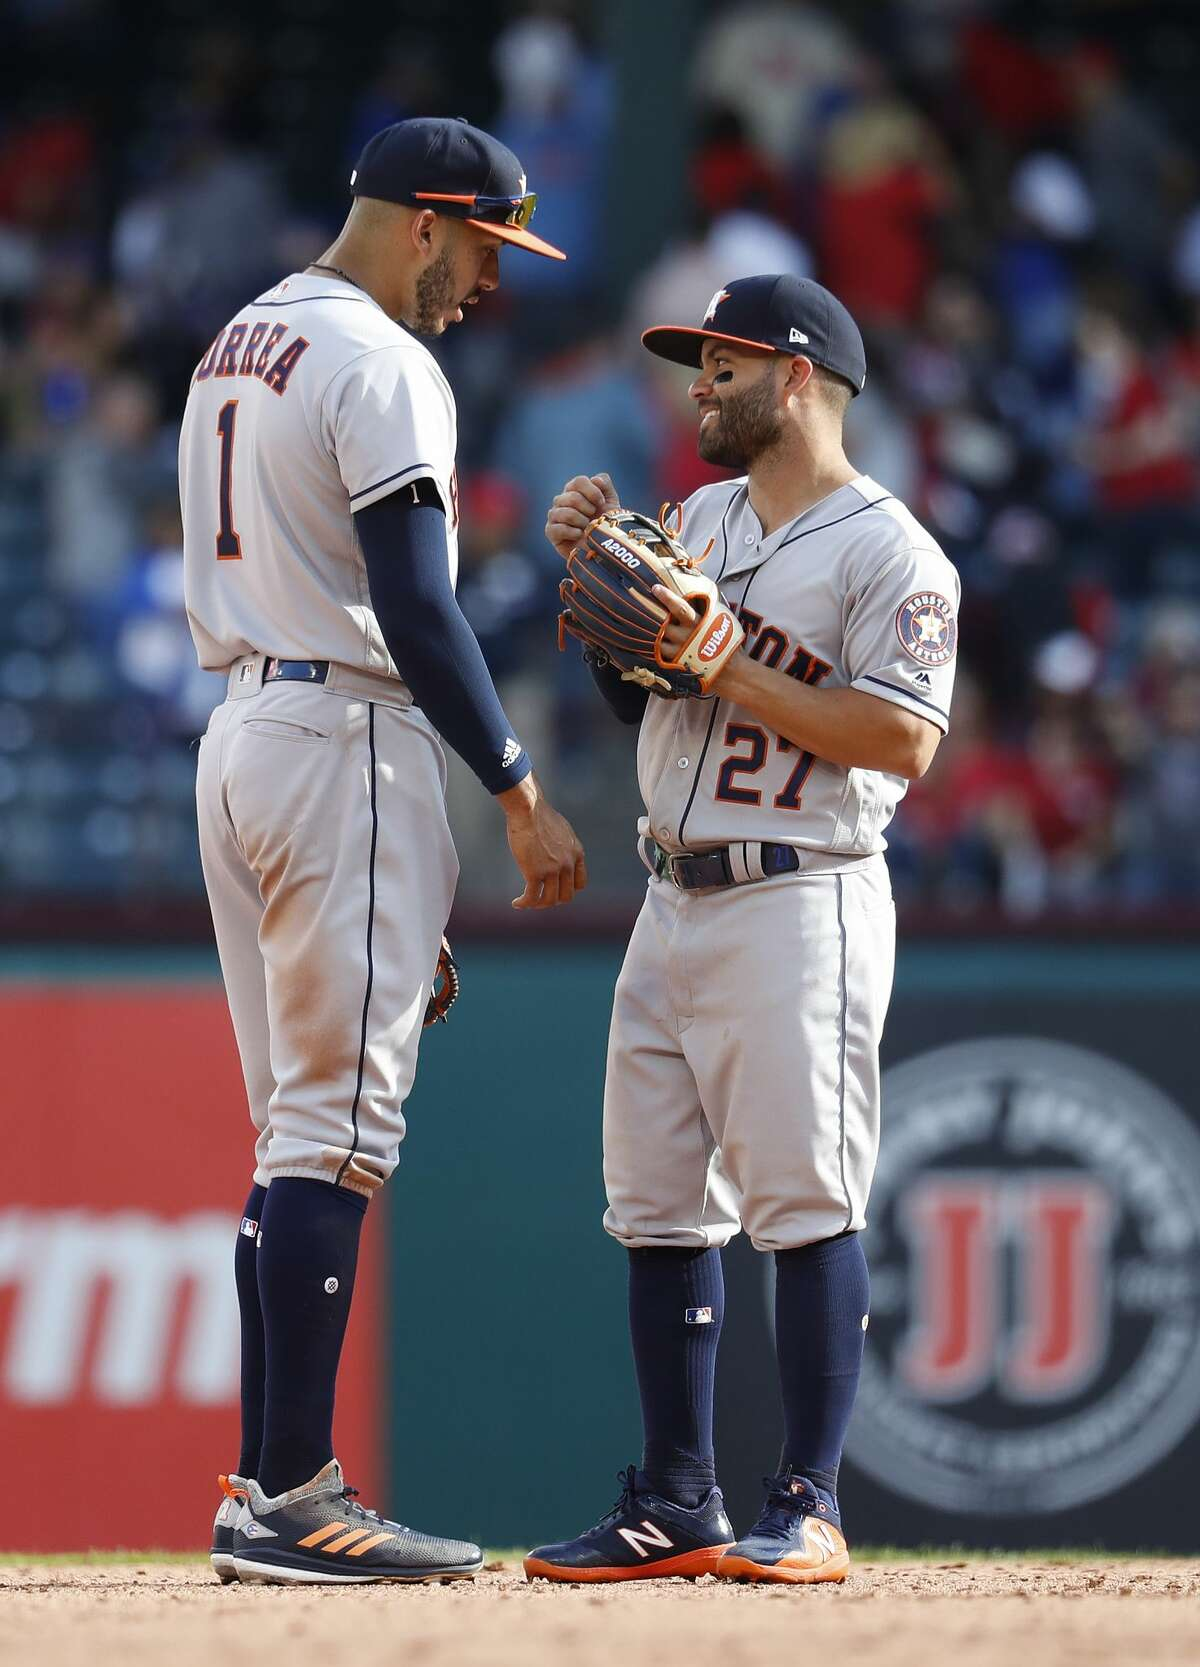 Houston Astros shortstop Carlos Correa (1) with Jose Altuve (27) on the field in the ninth inning of Opening Day at Globe Life Park, Thursday, March 29, 2018, in Arlington. ( Karen Warren / Houston Chronicle )